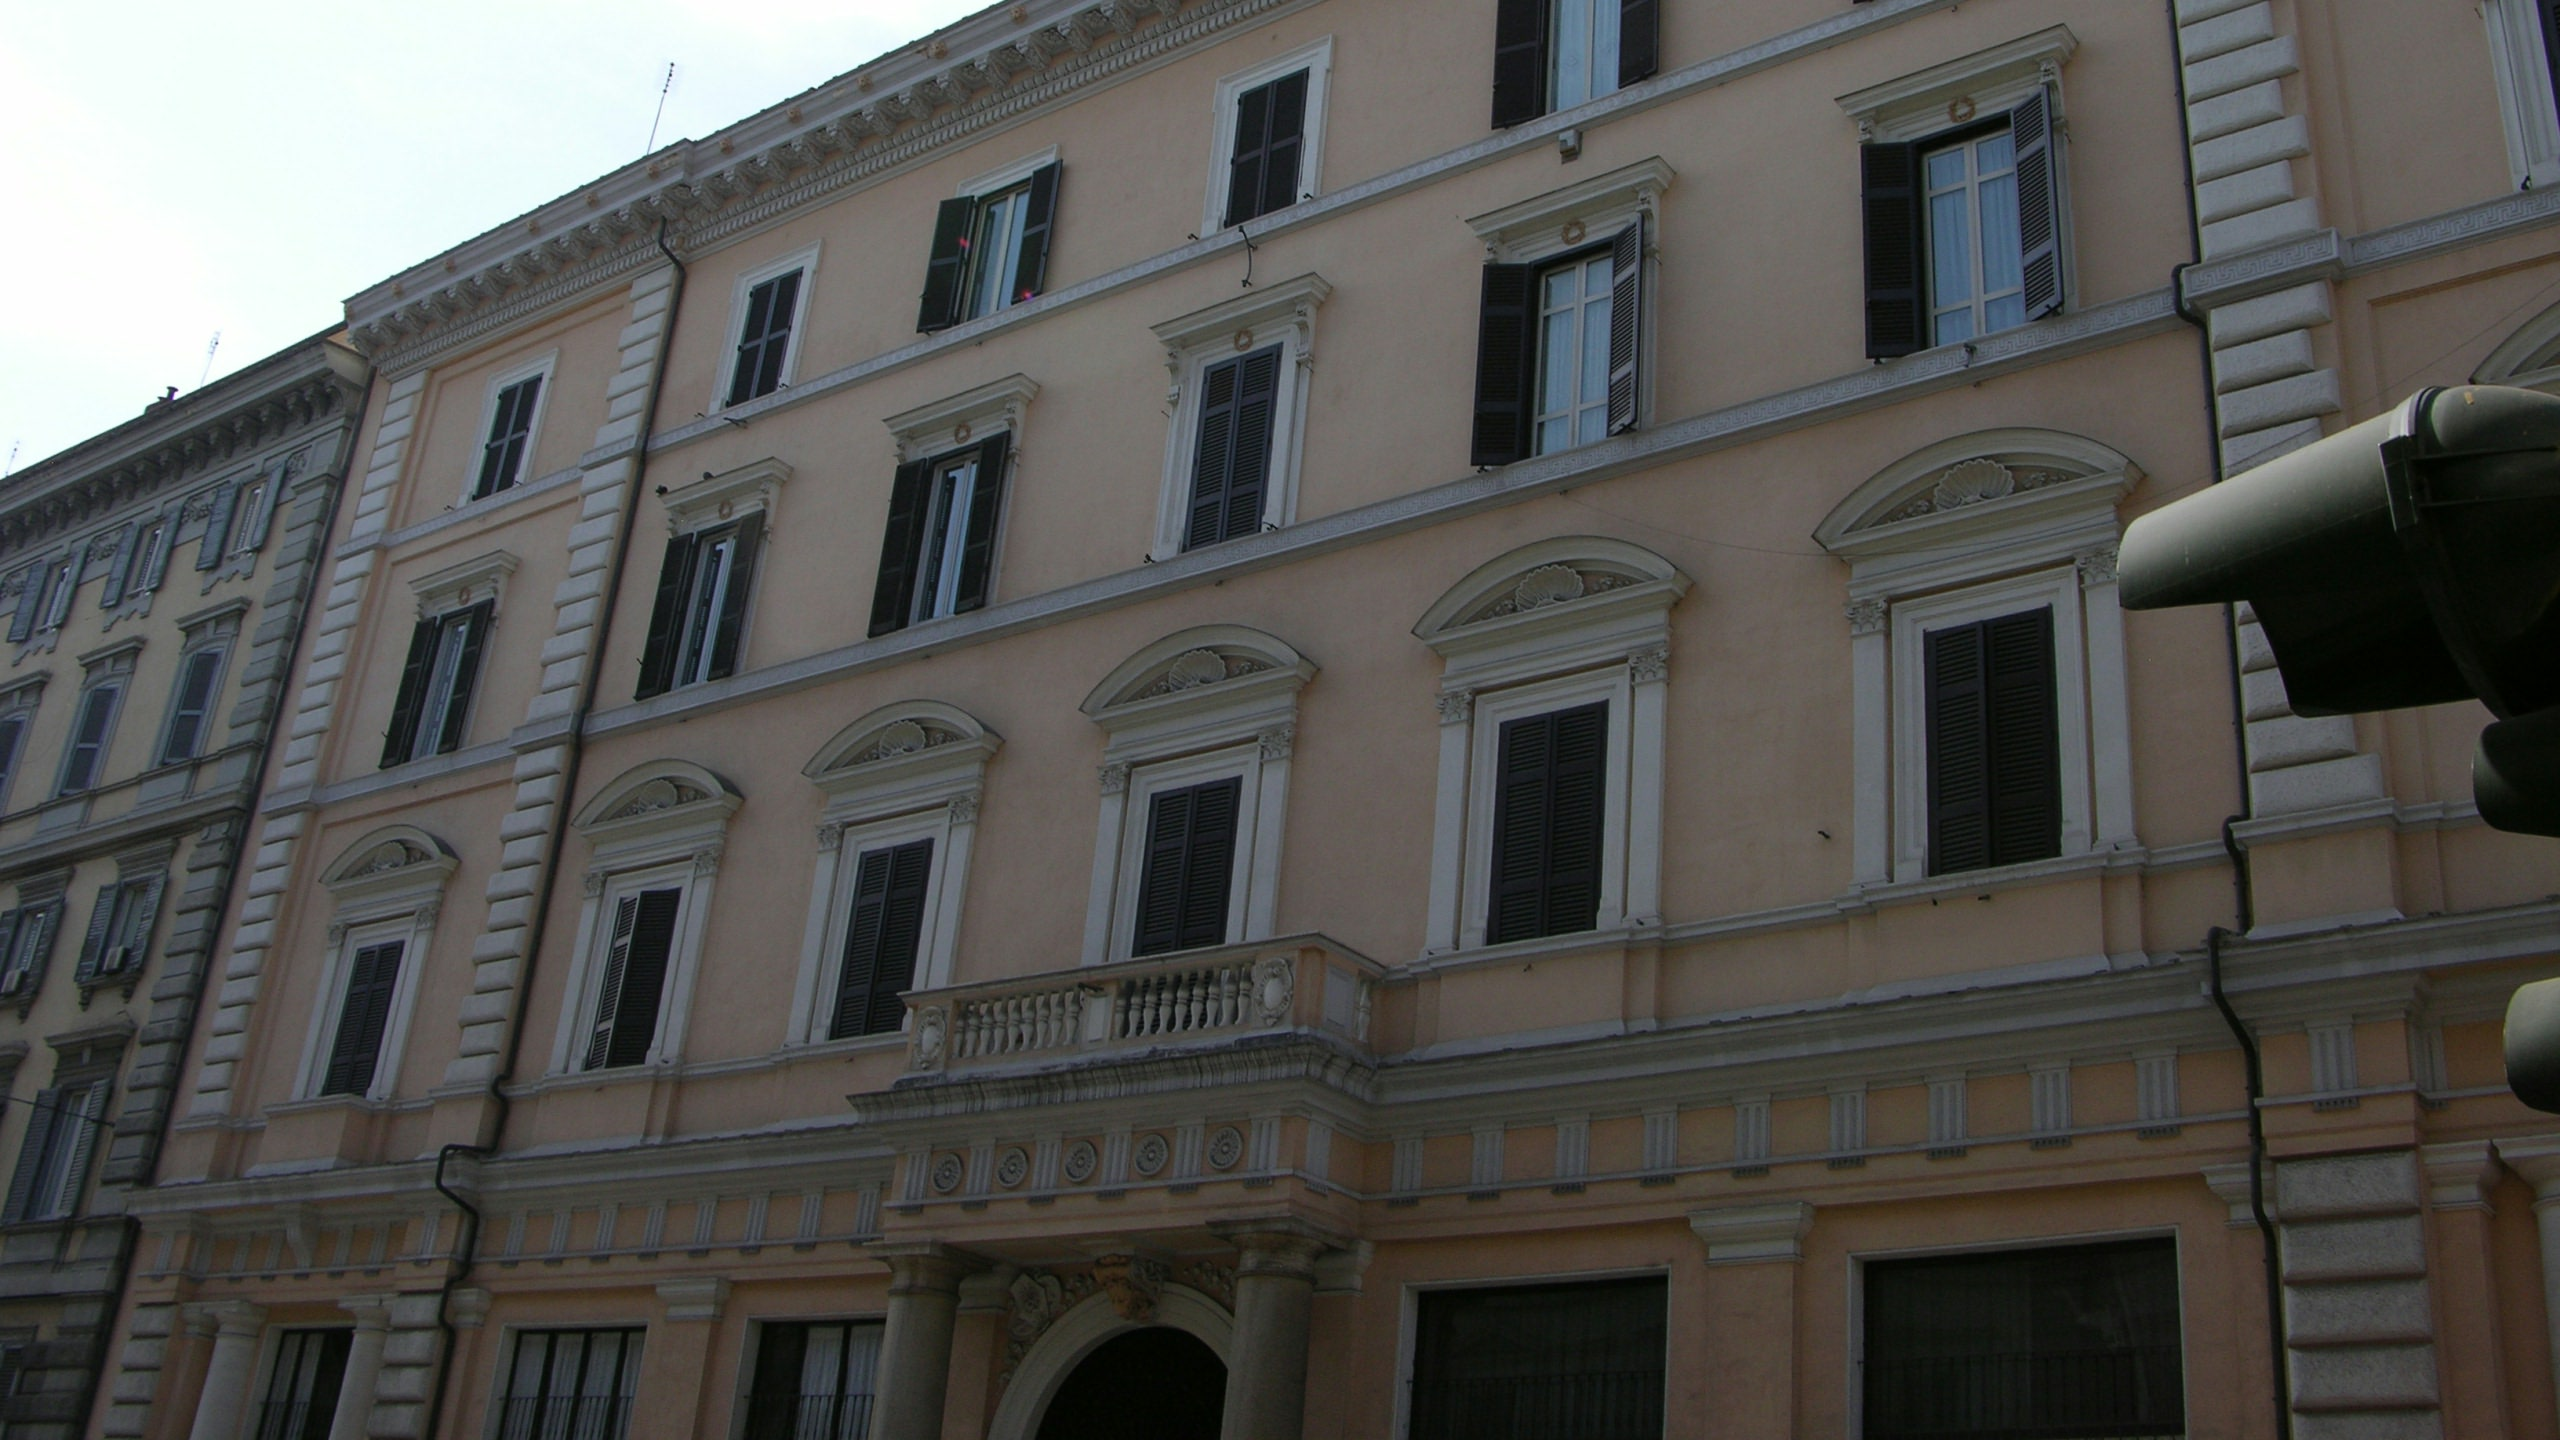 colosseo-suites-roma-externo-01